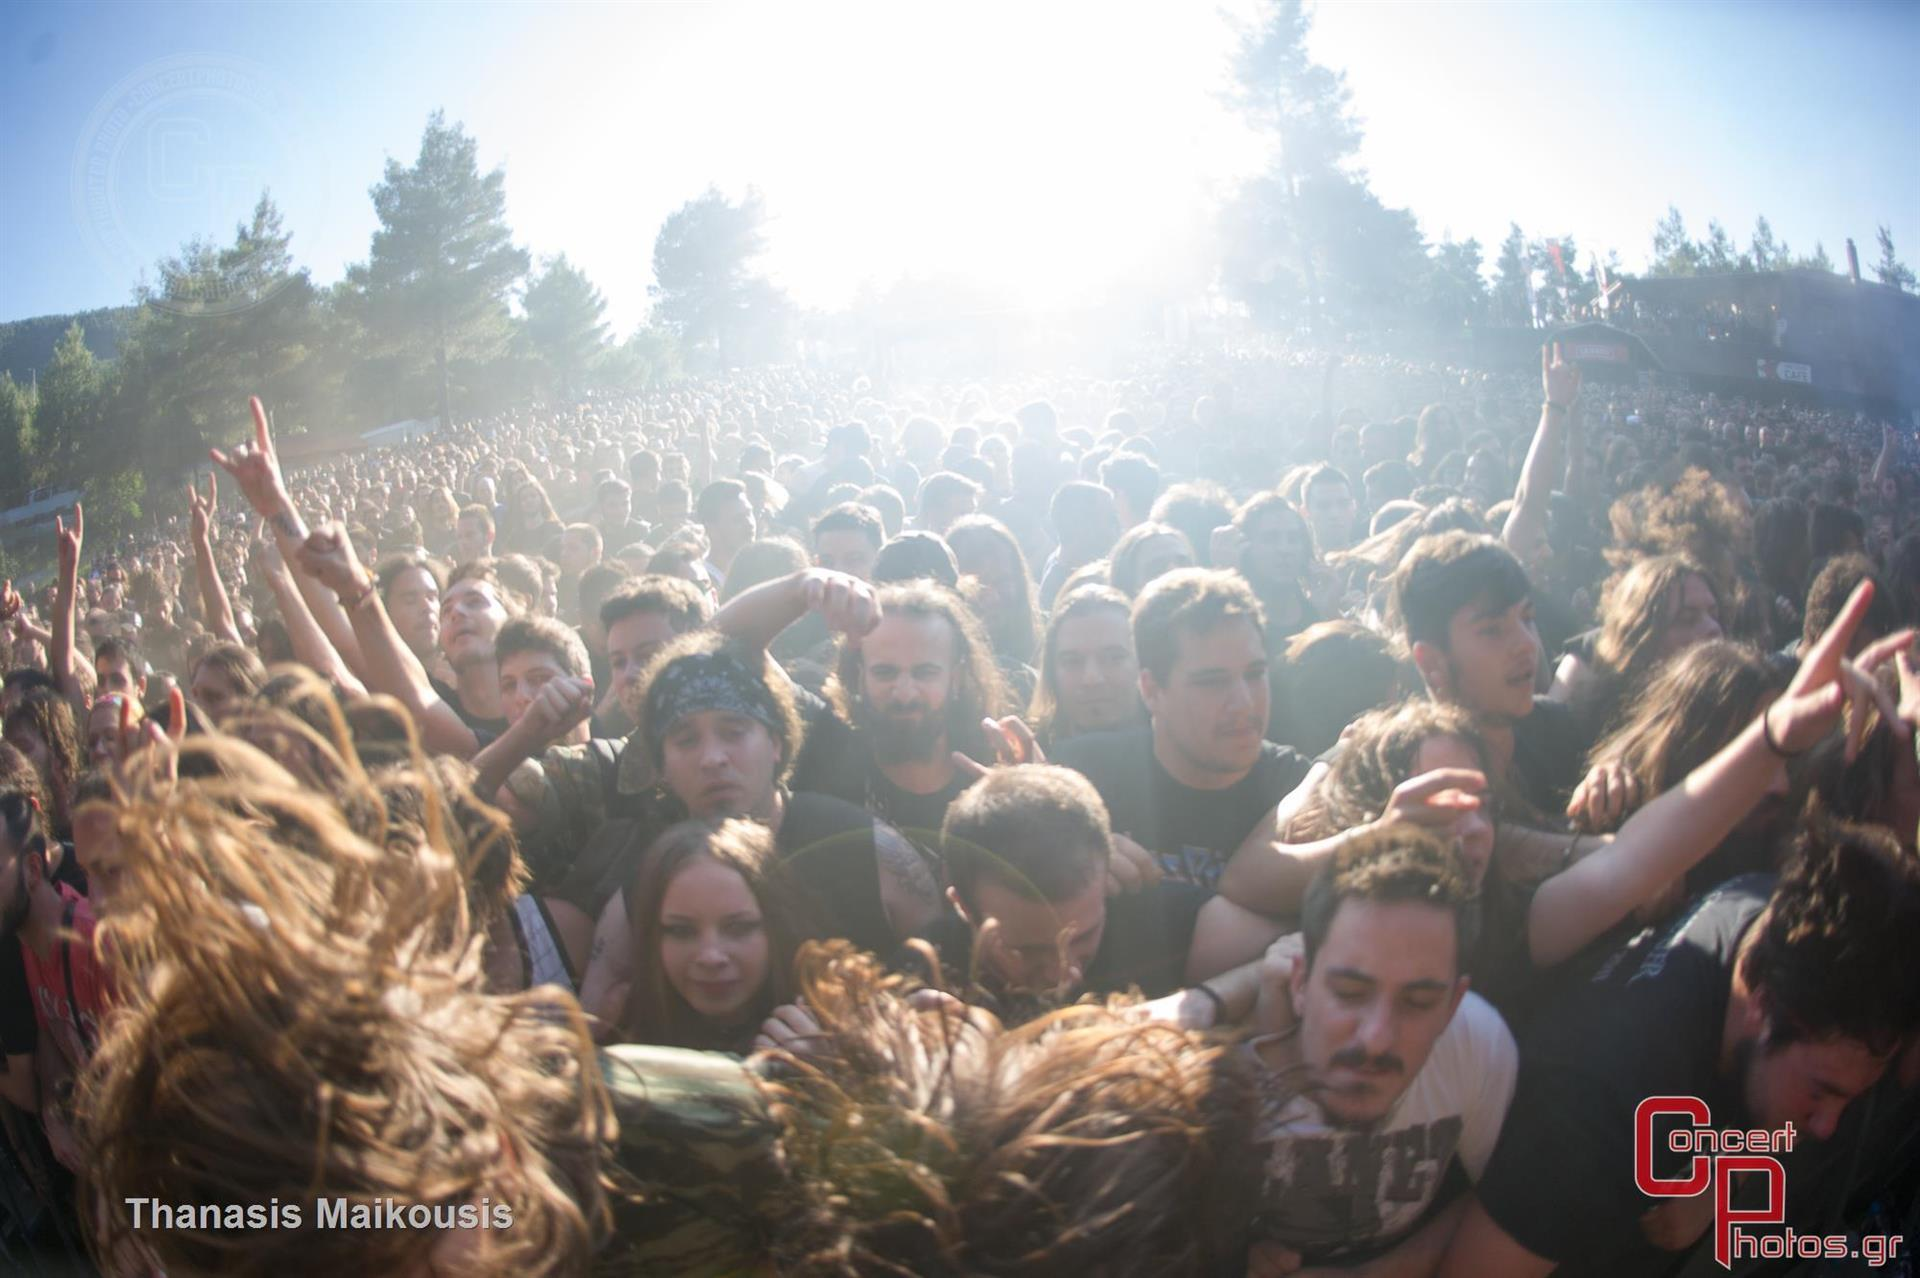 Rockwave 2015 - Day 3-Rockwave 2015 - Day 3 photographer: Thanasis Maikousis - ConcertPhotos - 20150704_1811_18